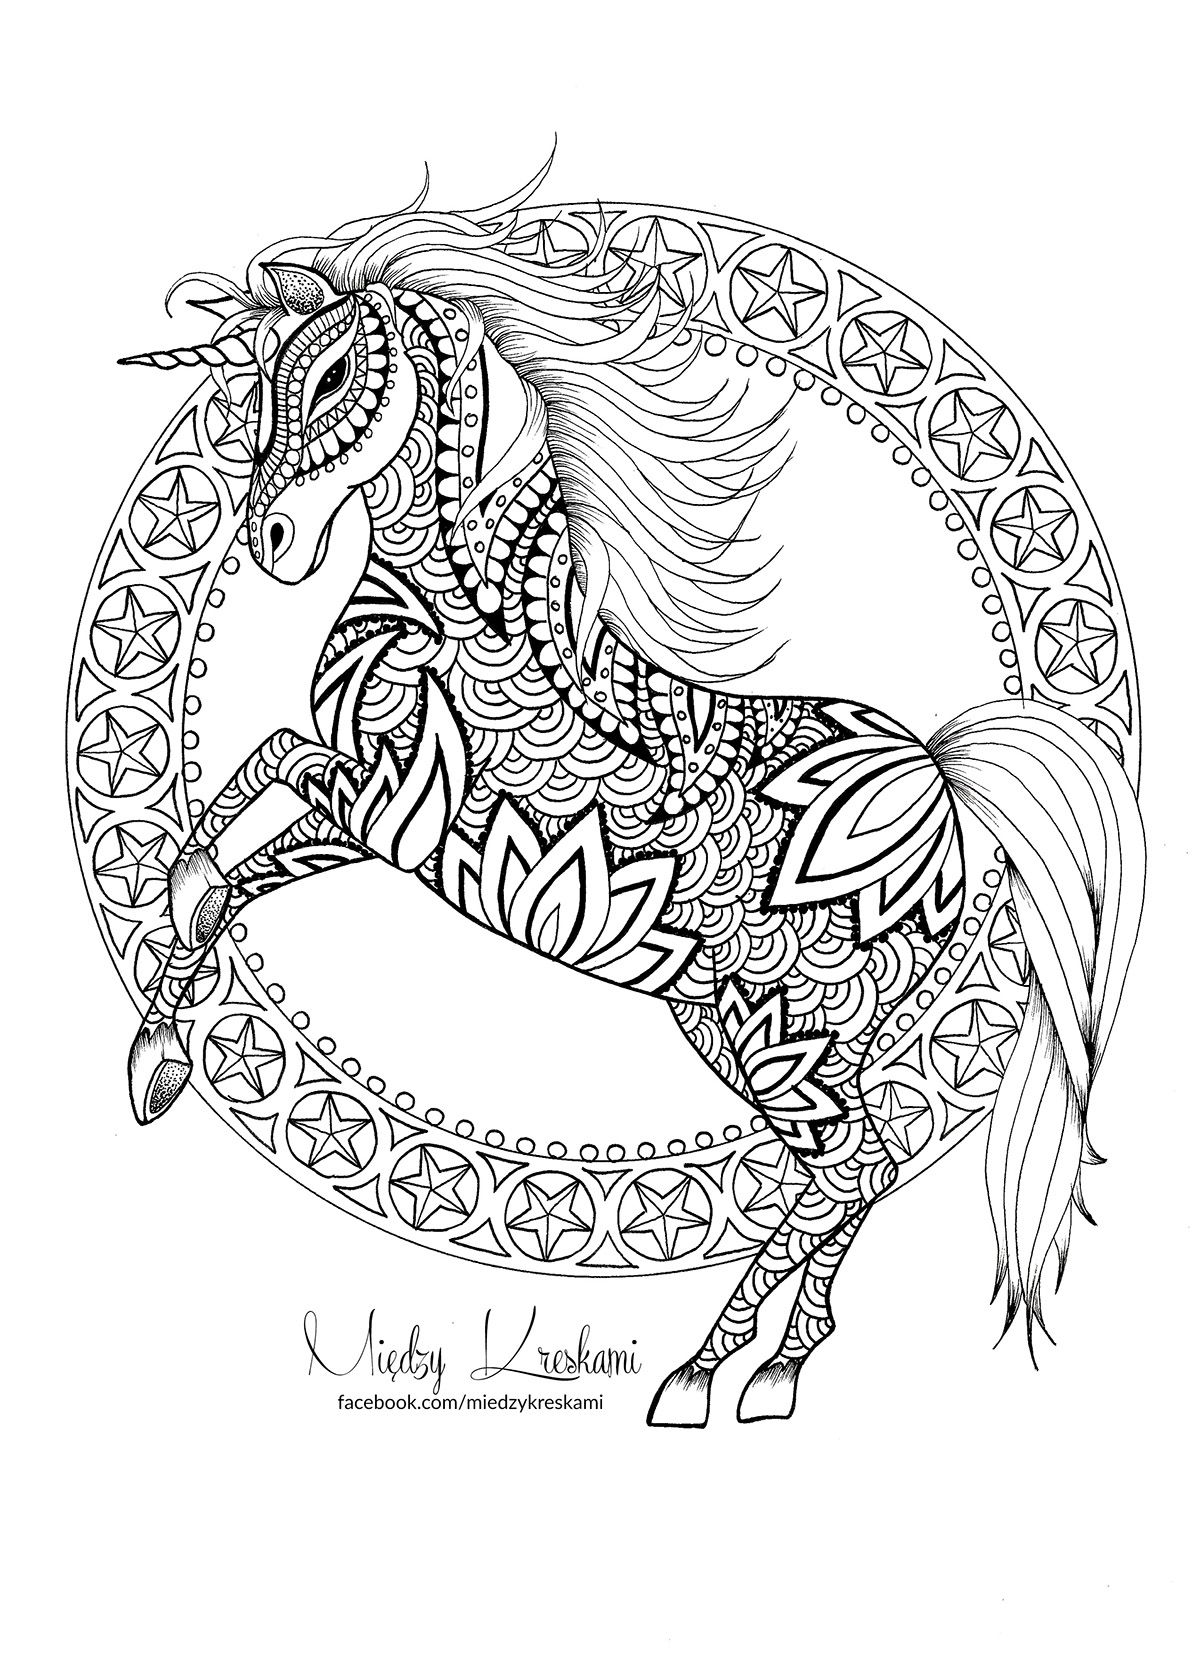 Unicorn doodle coloring page on Behance (With images ...